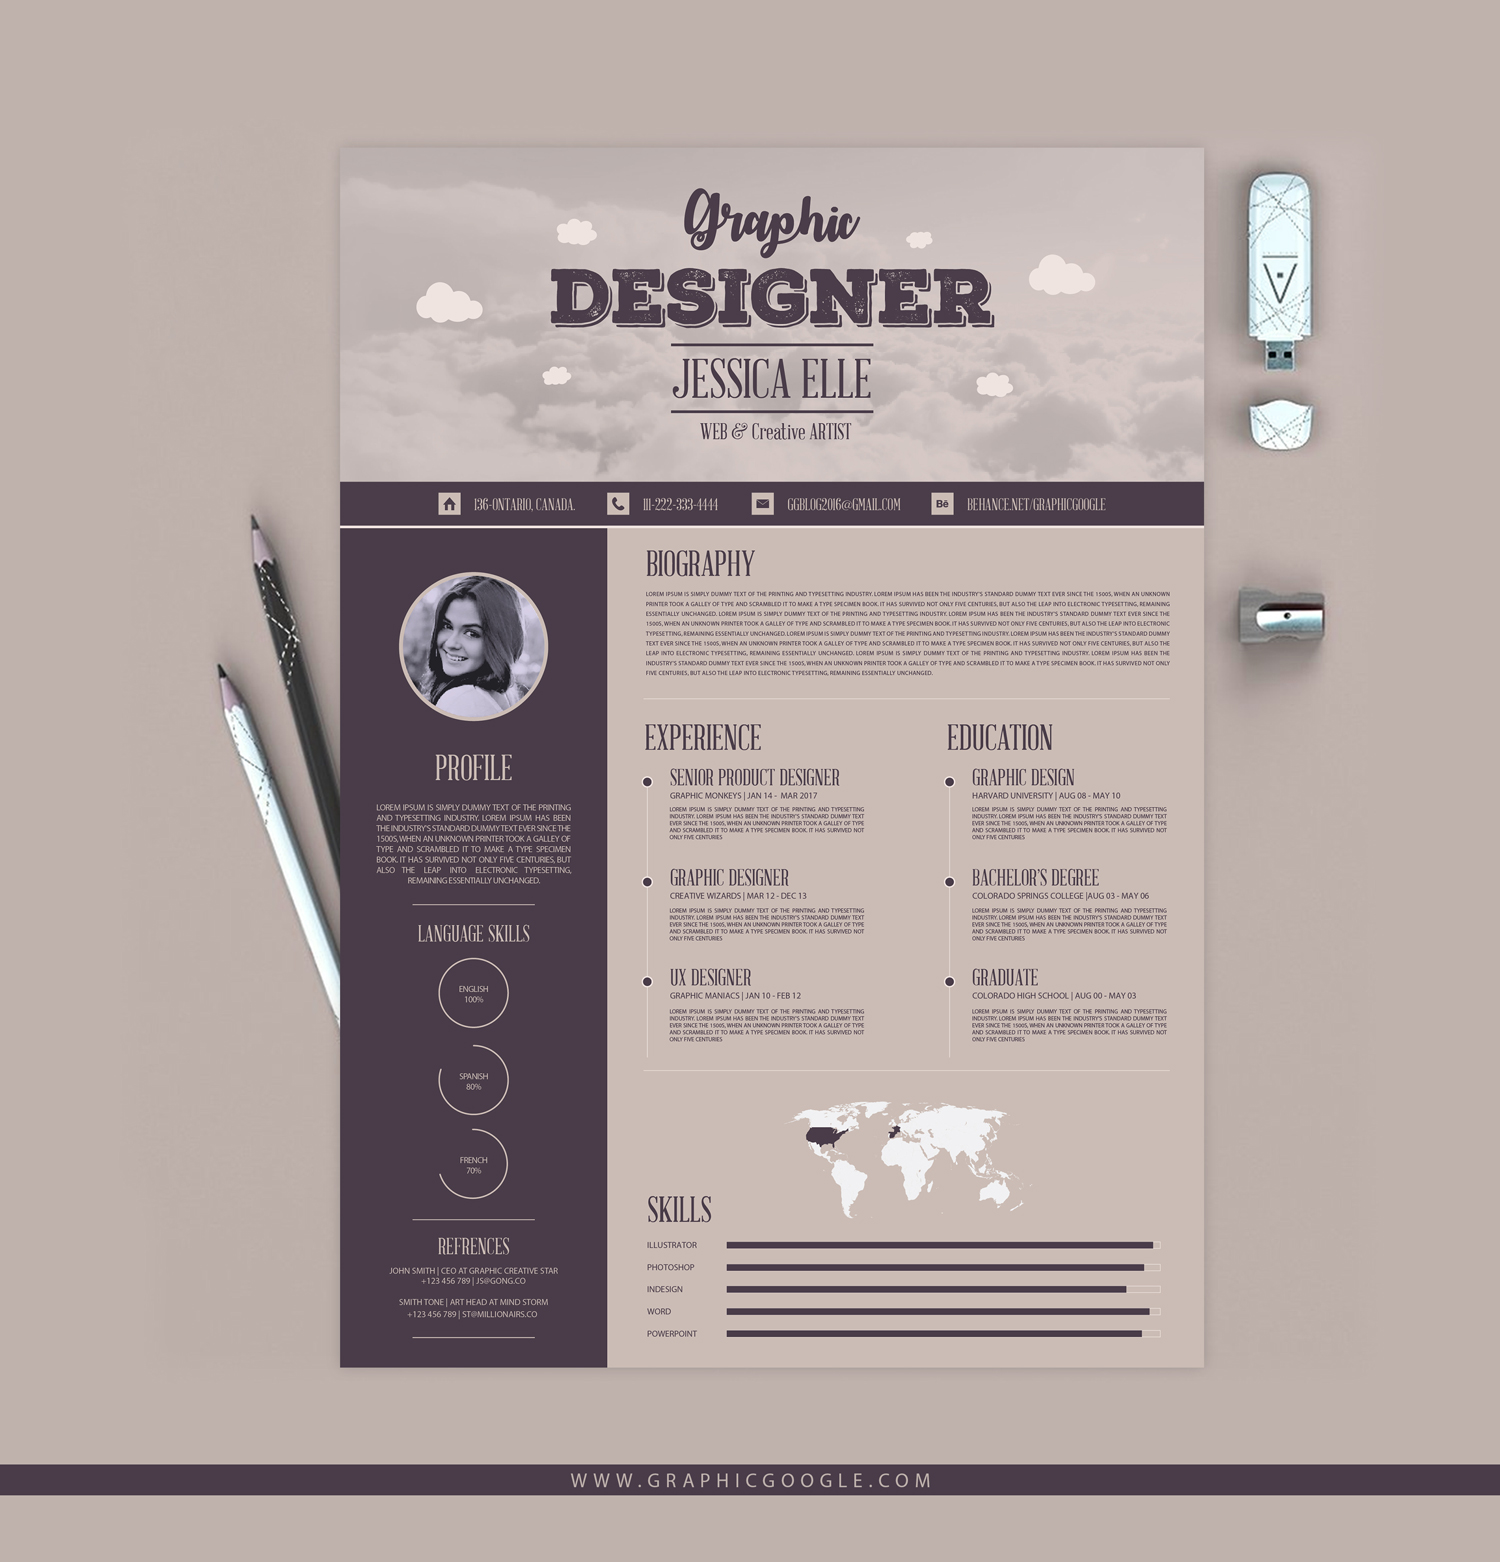 creative vintage resume design template for designers